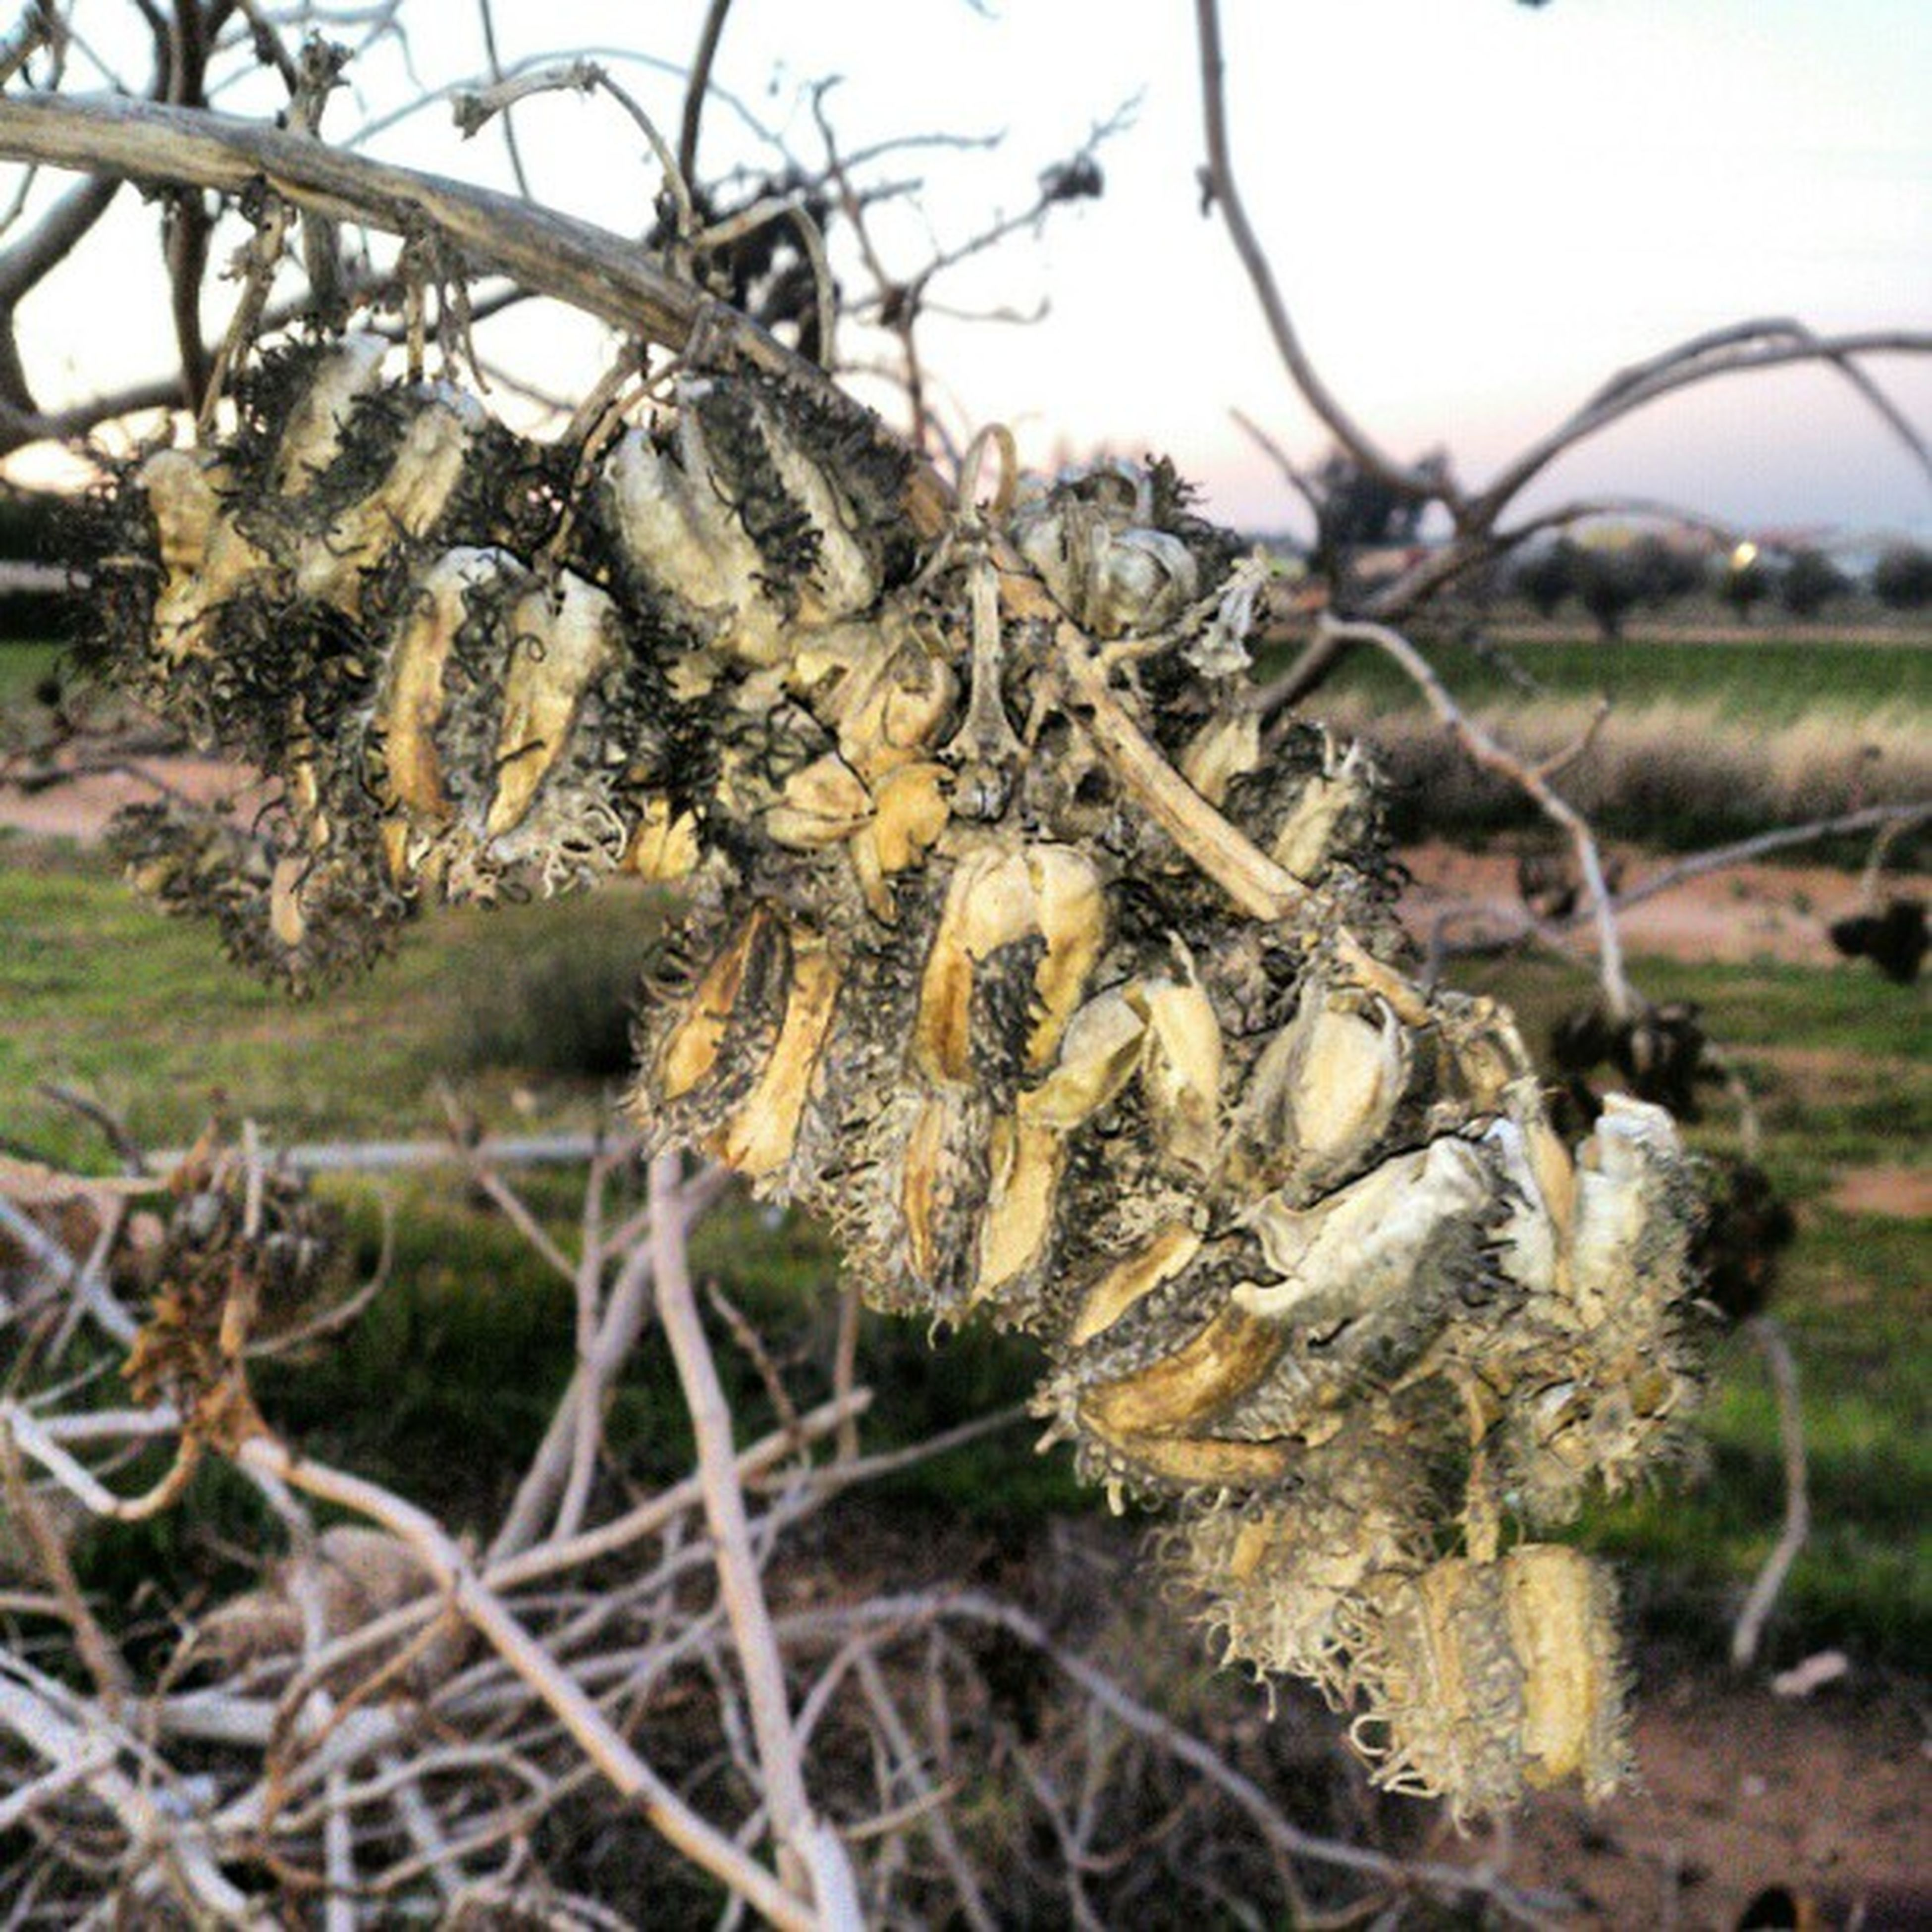 focus on foreground, growth, close-up, nature, plant, field, dry, spiked, cactus, thorn, tranquility, day, sky, dried plant, dead plant, outdoors, selective focus, agriculture, beauty in nature, no people